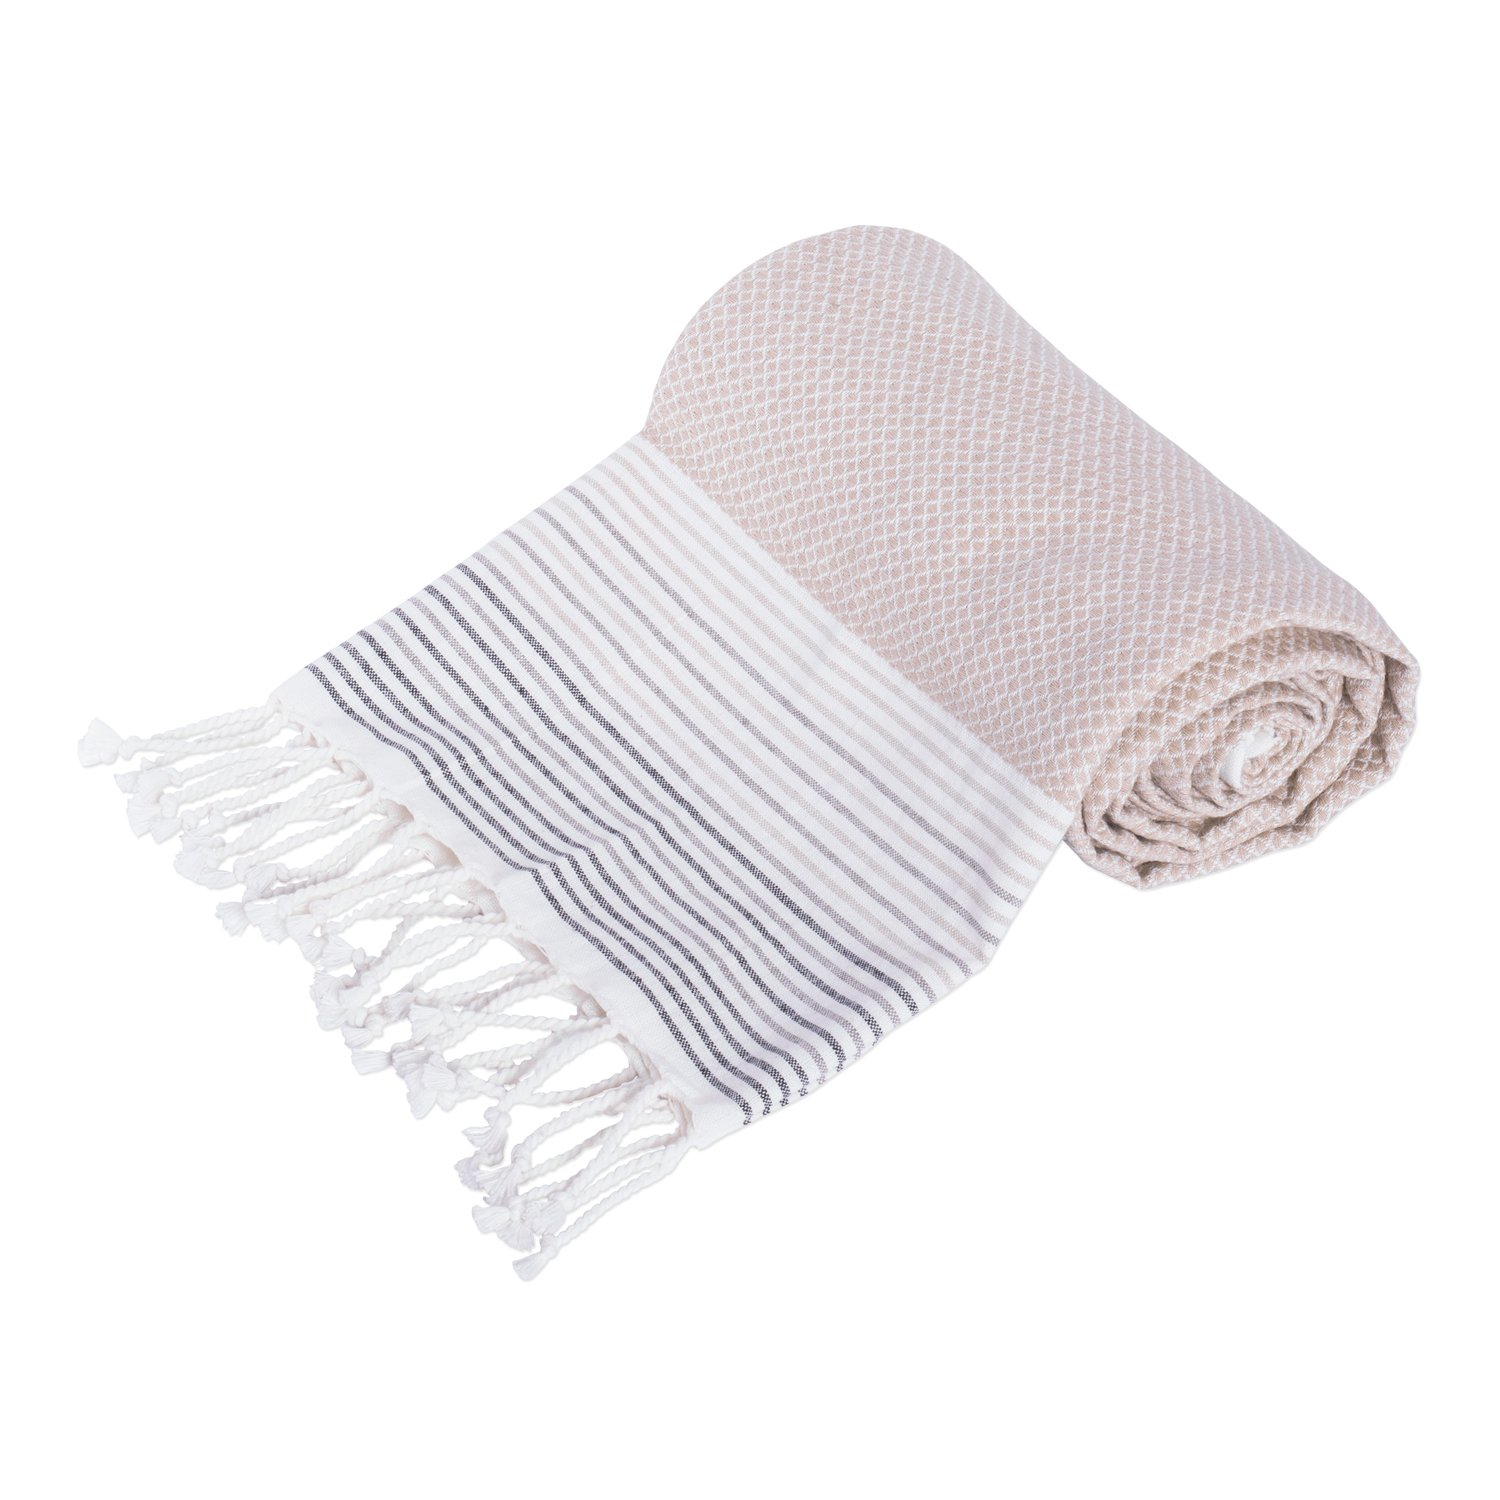 DII Peshtemal Turkish Super Soft, Absorbent, Oversized Bath Towel, Throw, Blanket Fringe for Chair, Couch, Picnic, Camping, Beach, Yoga, Pilates, Everyday Use, 39 x 71 - Taupe Stripe